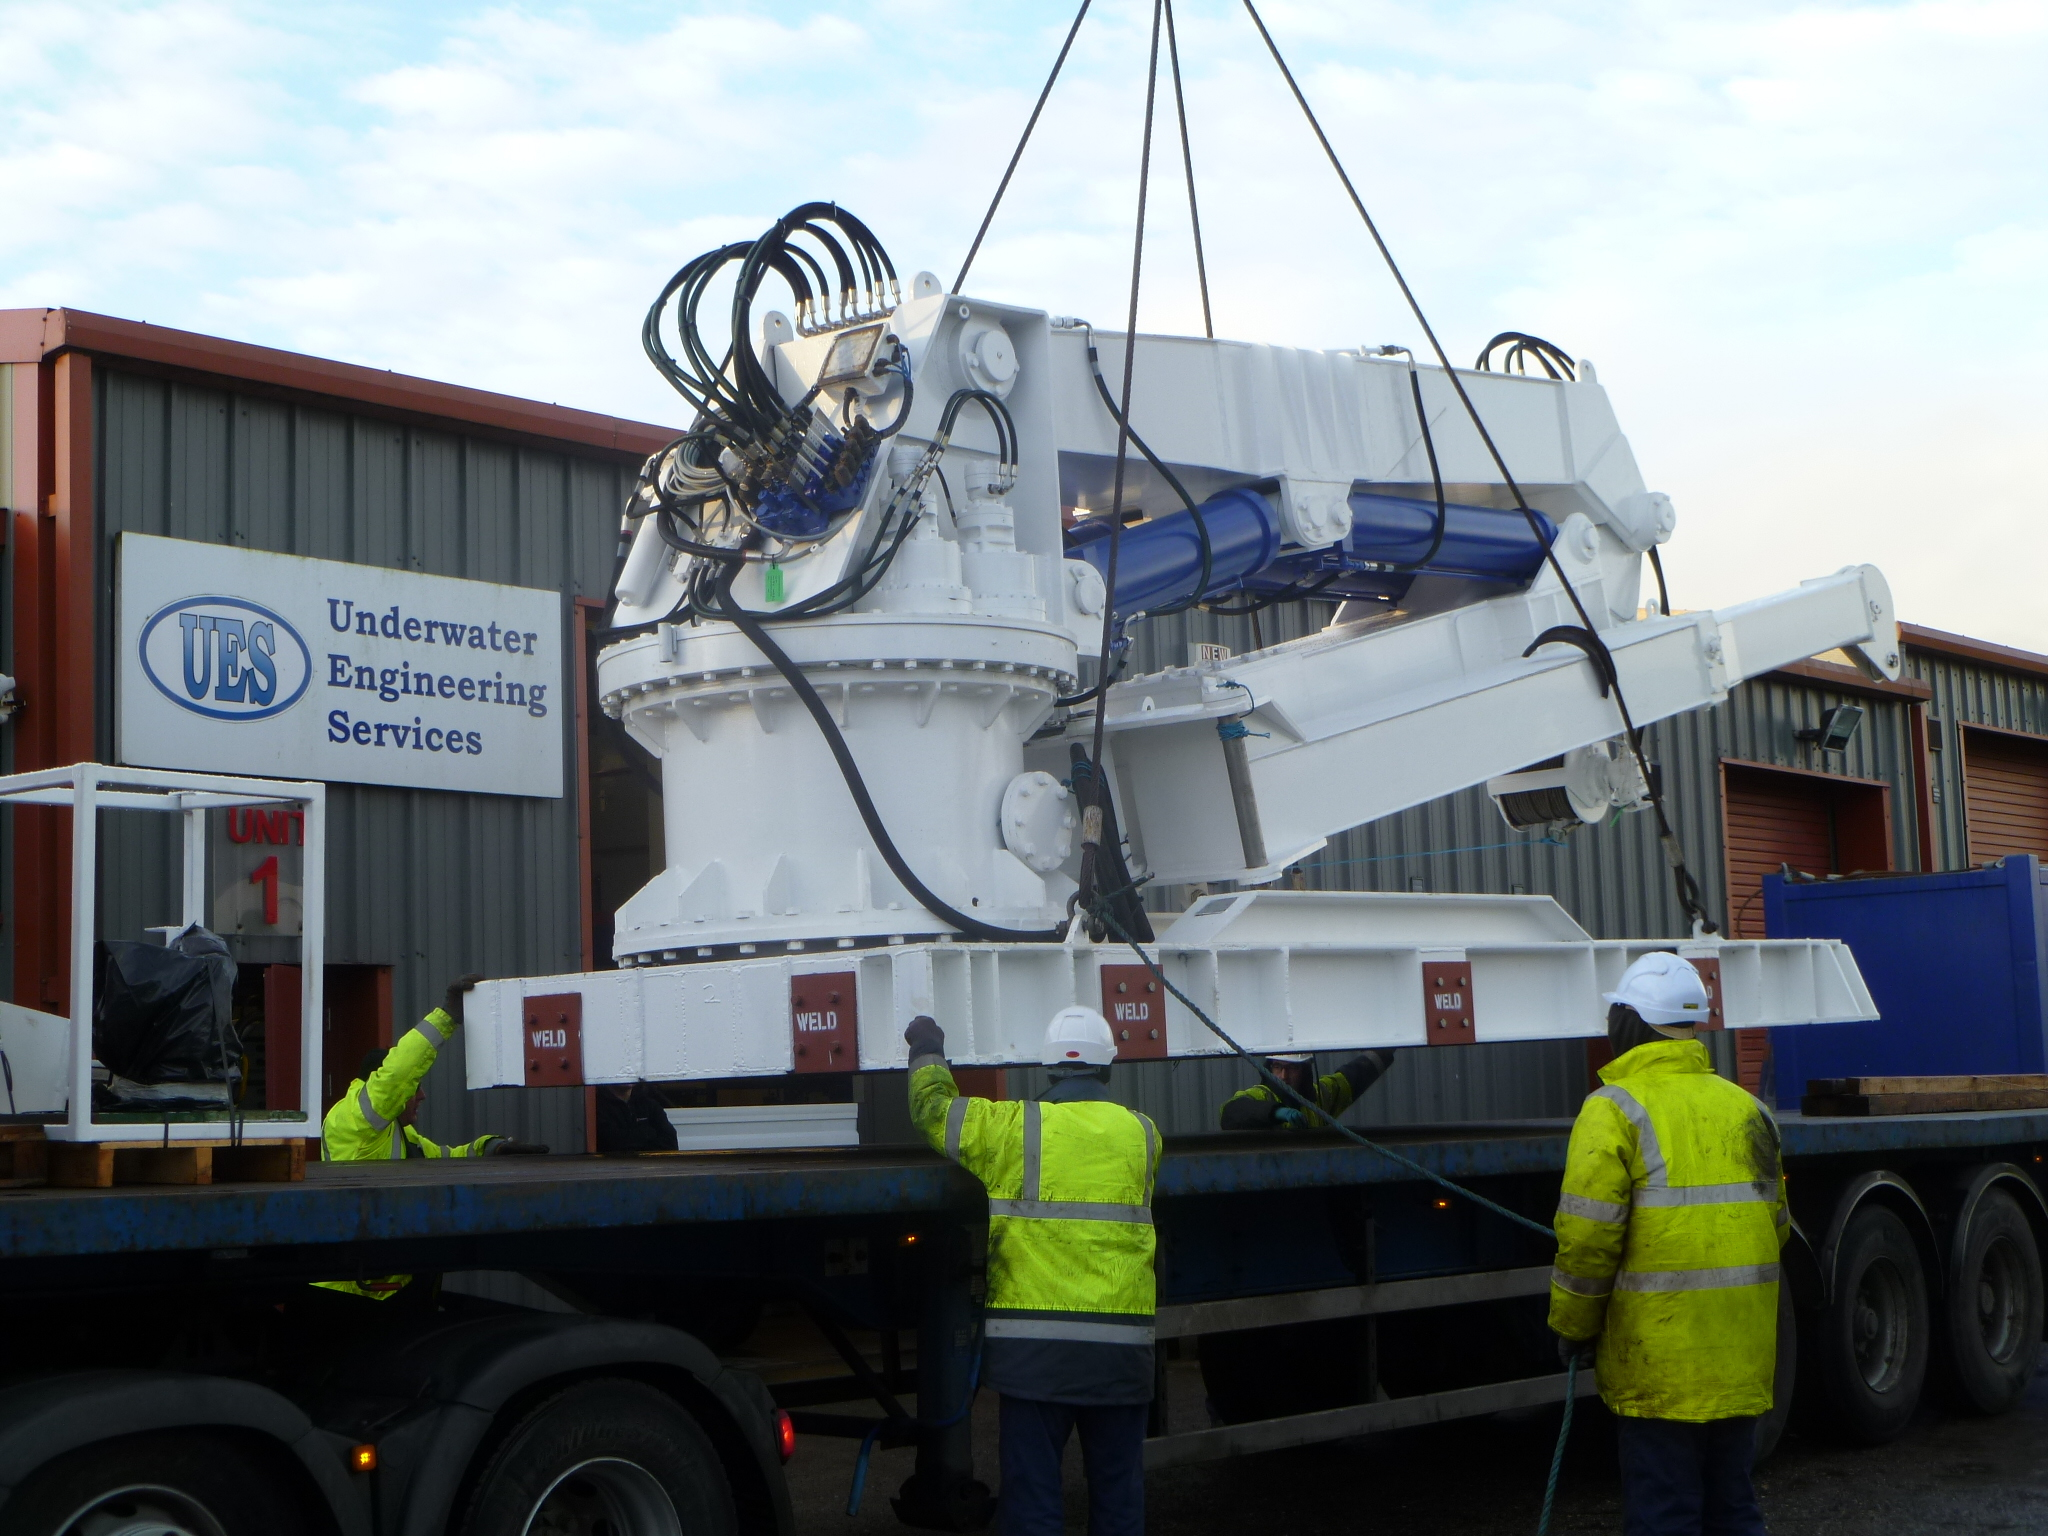 UES engineers complete the refurbishment of client's marine crane